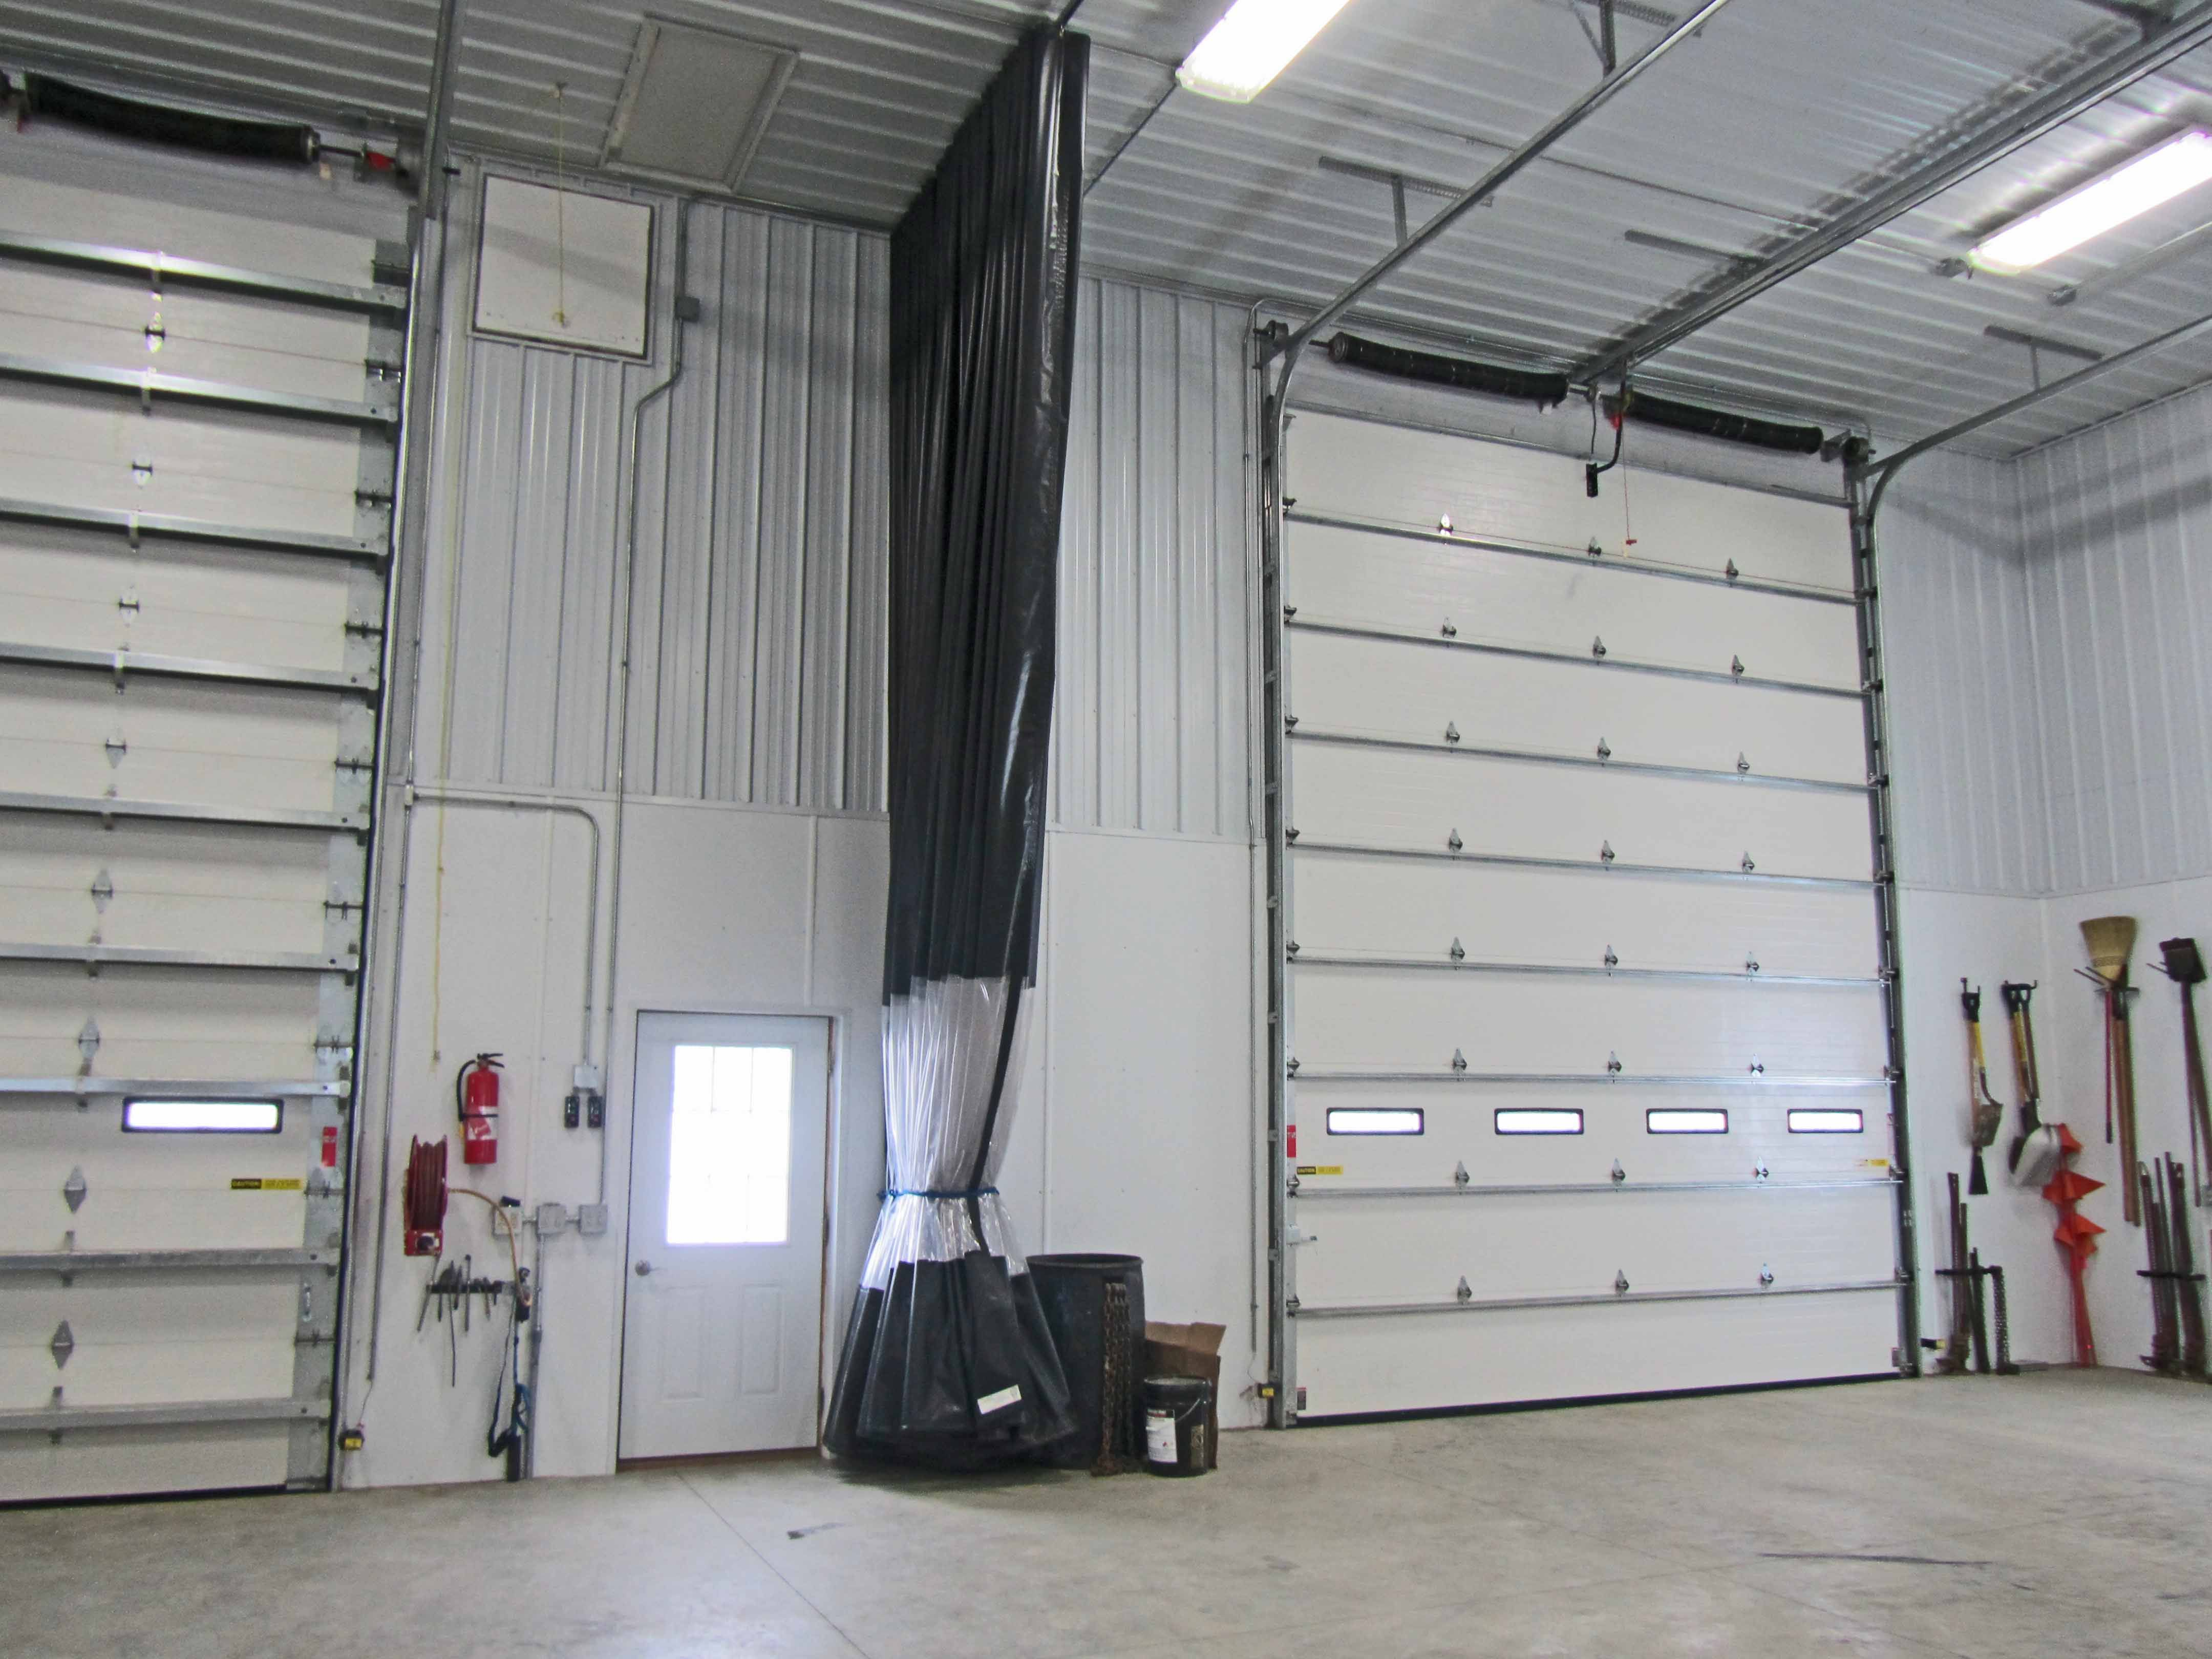 Inwash Bay Divider Curtain Used In Large Storage Facility